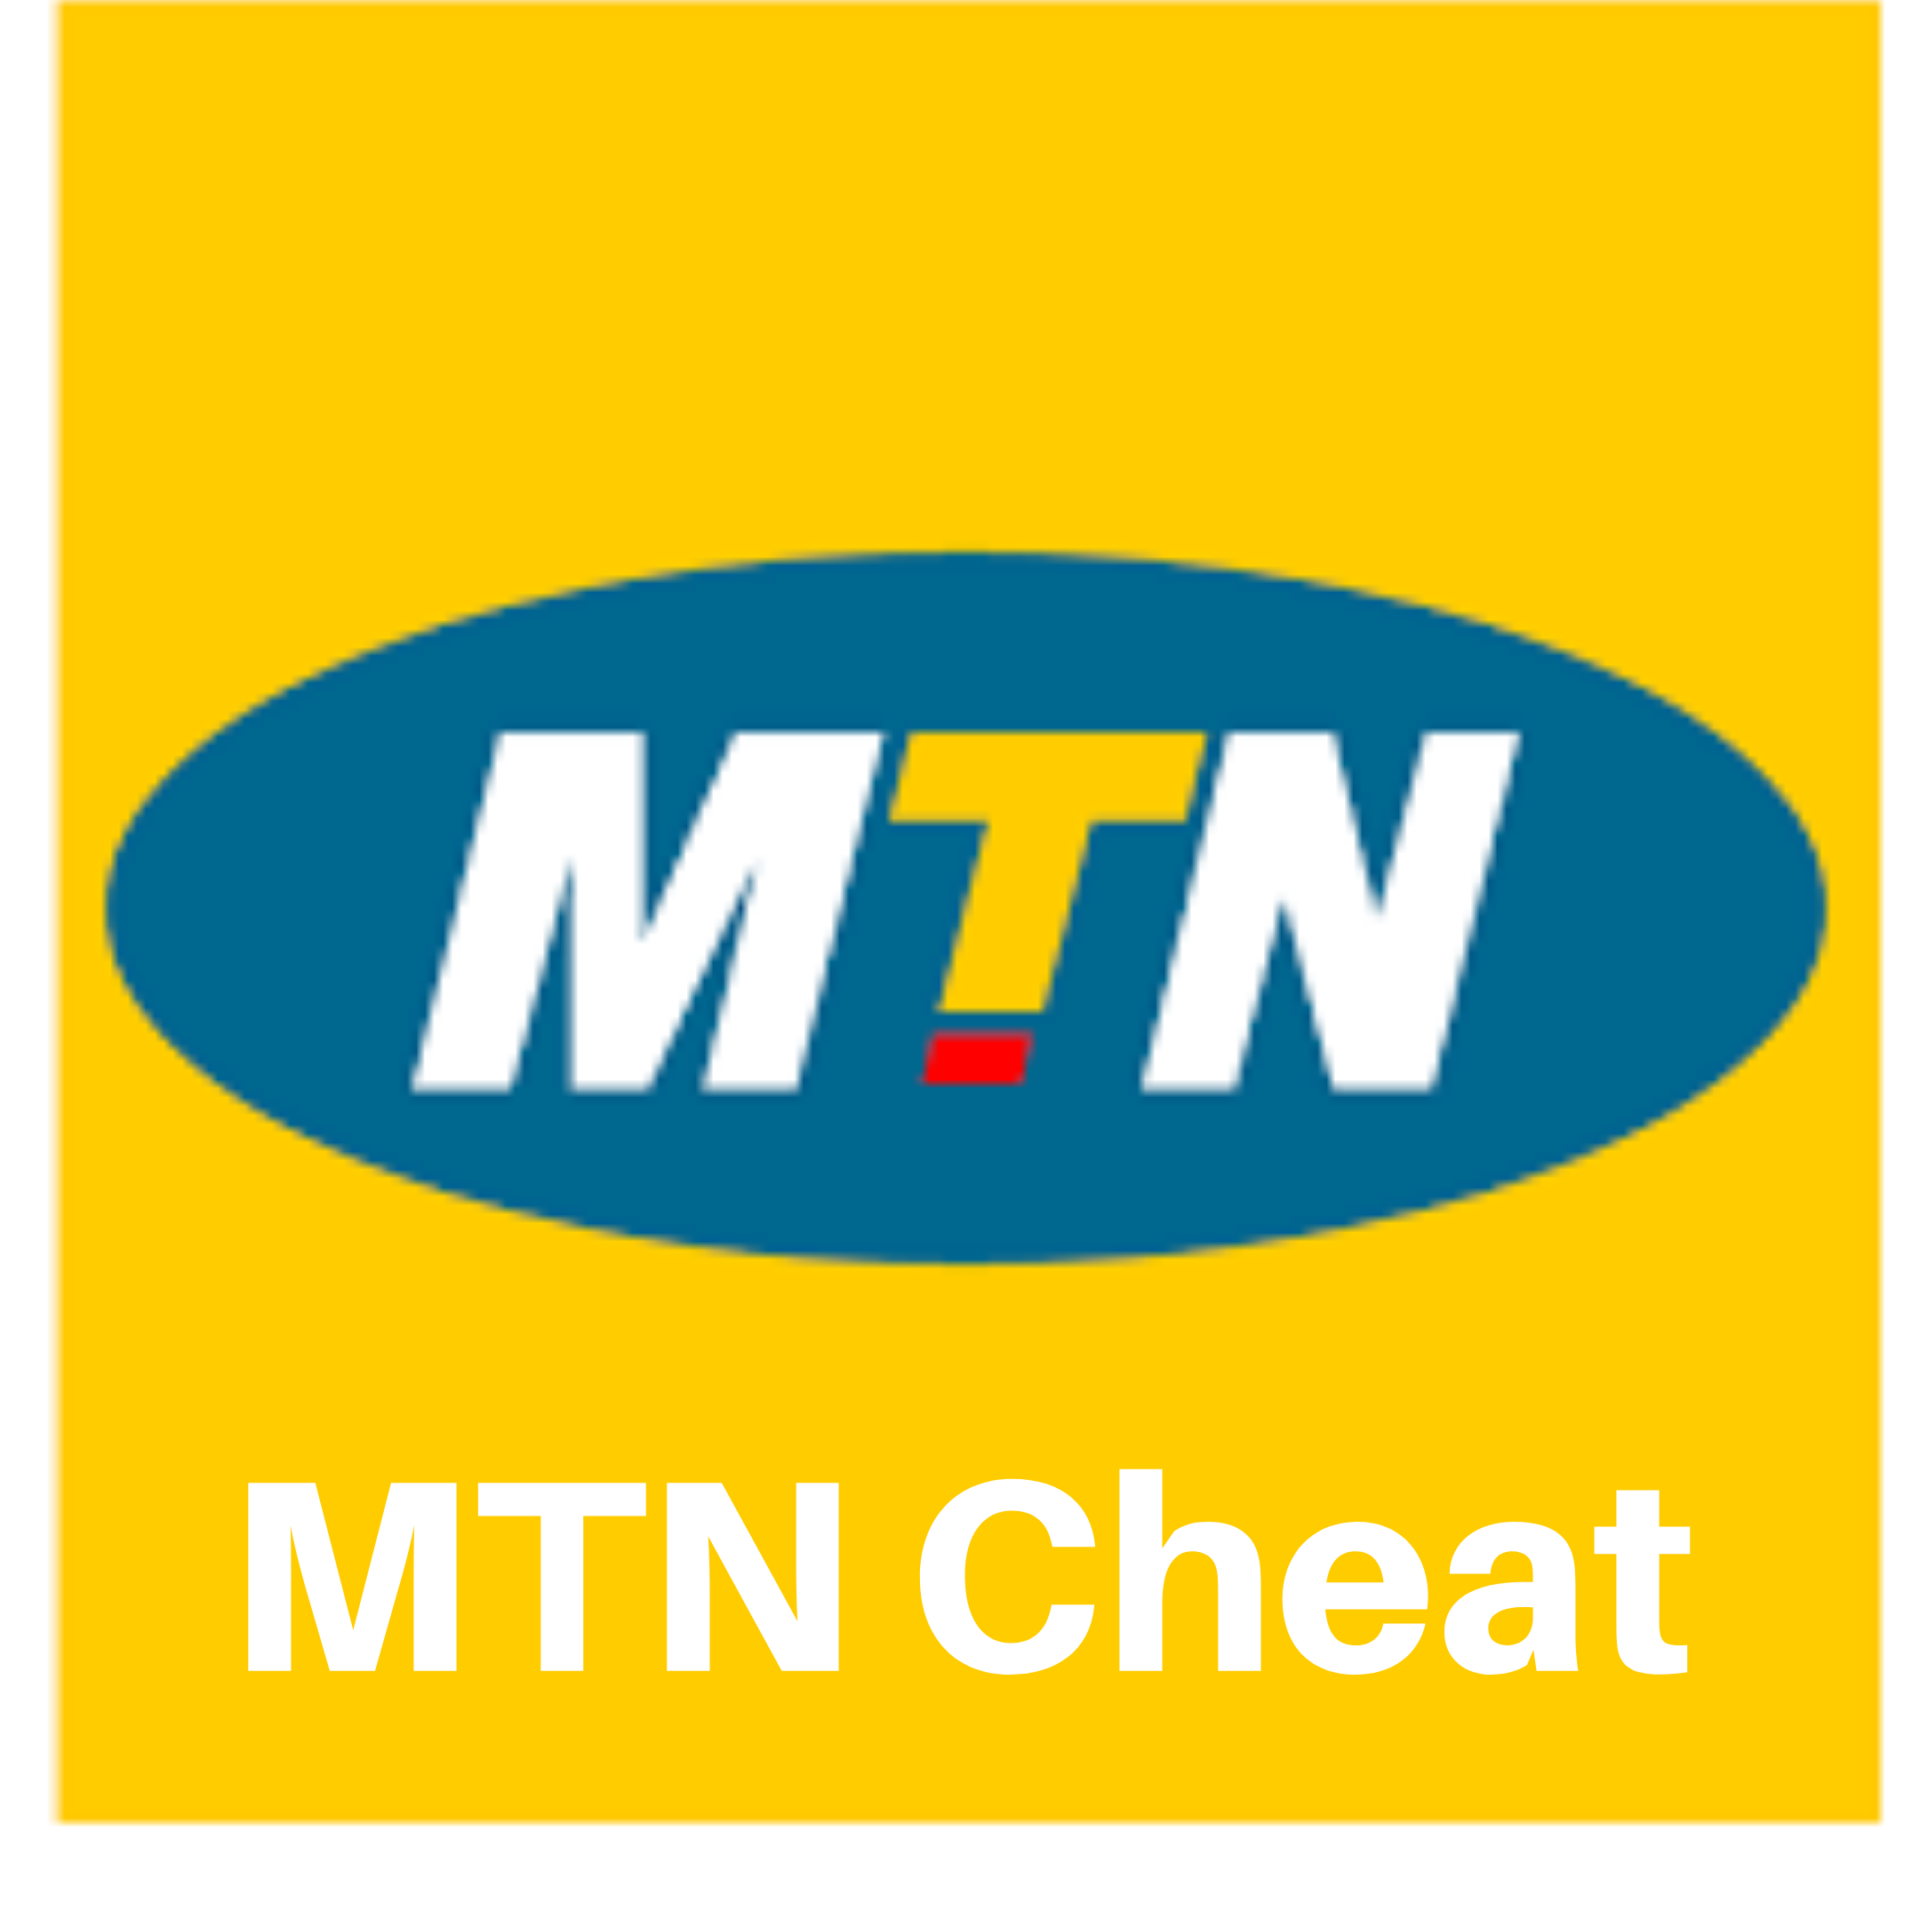 Free mtn cheat for data